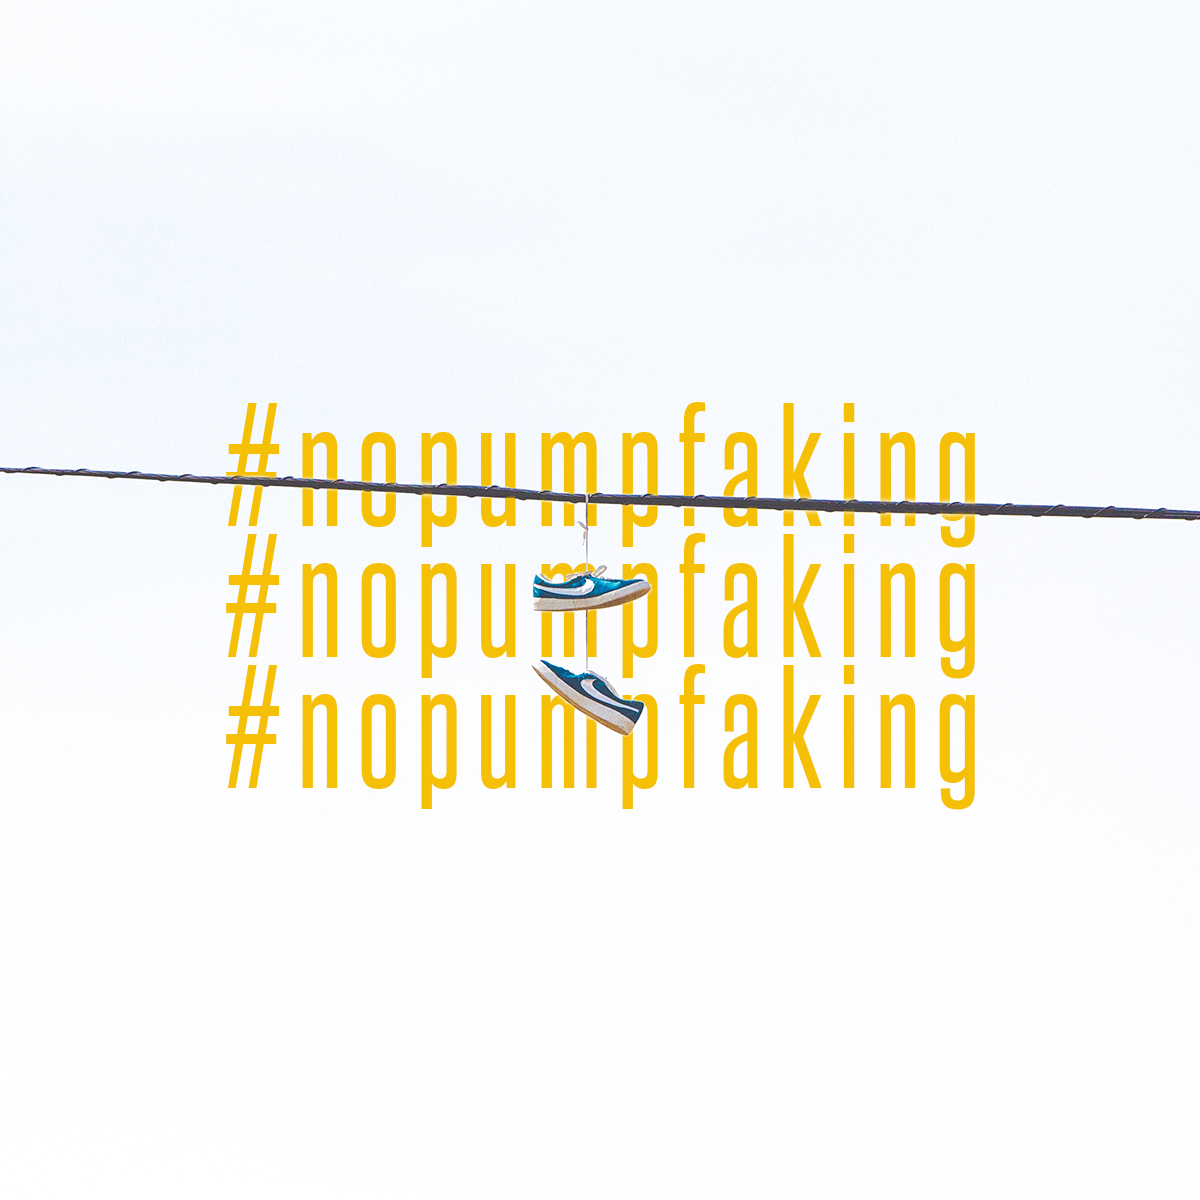 Free Download: #Nopumpfaking Wallpaper